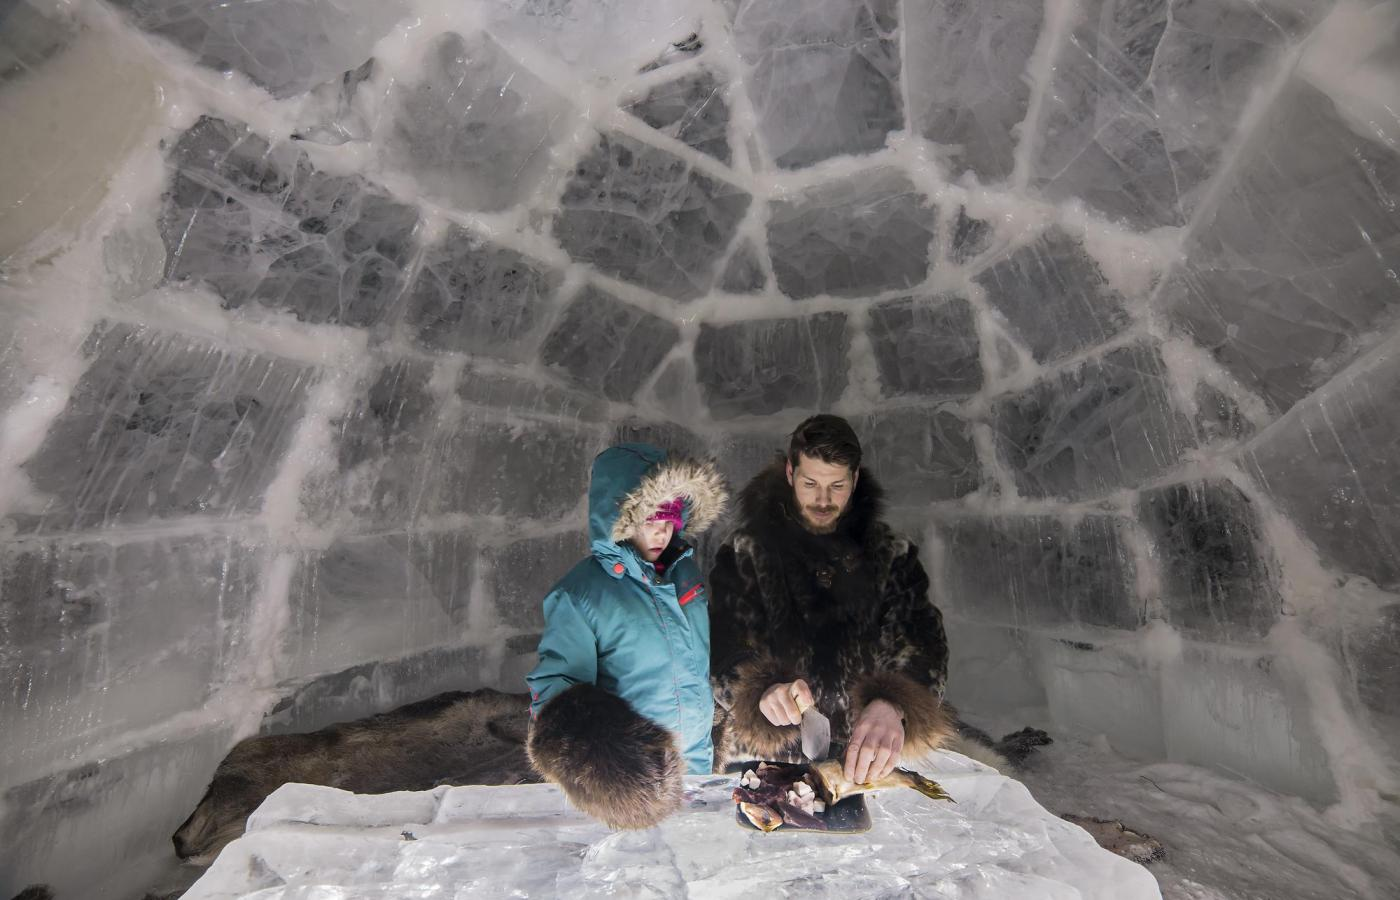 a man and a child huddle in an igloo preparing a meal